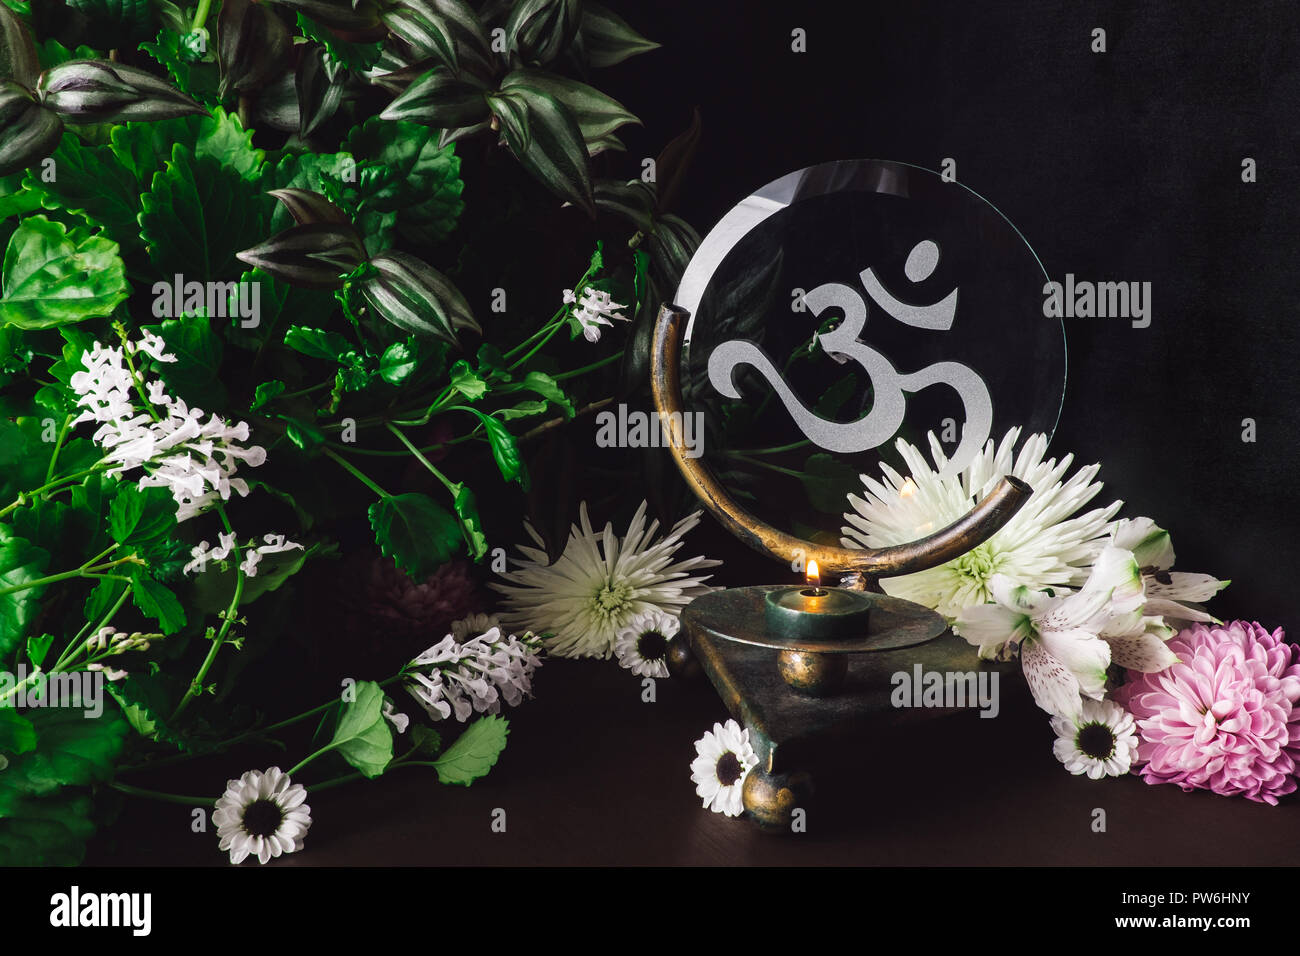 Green Candle on Om Altar with Mixed Flowers and Foliage Stock Photo